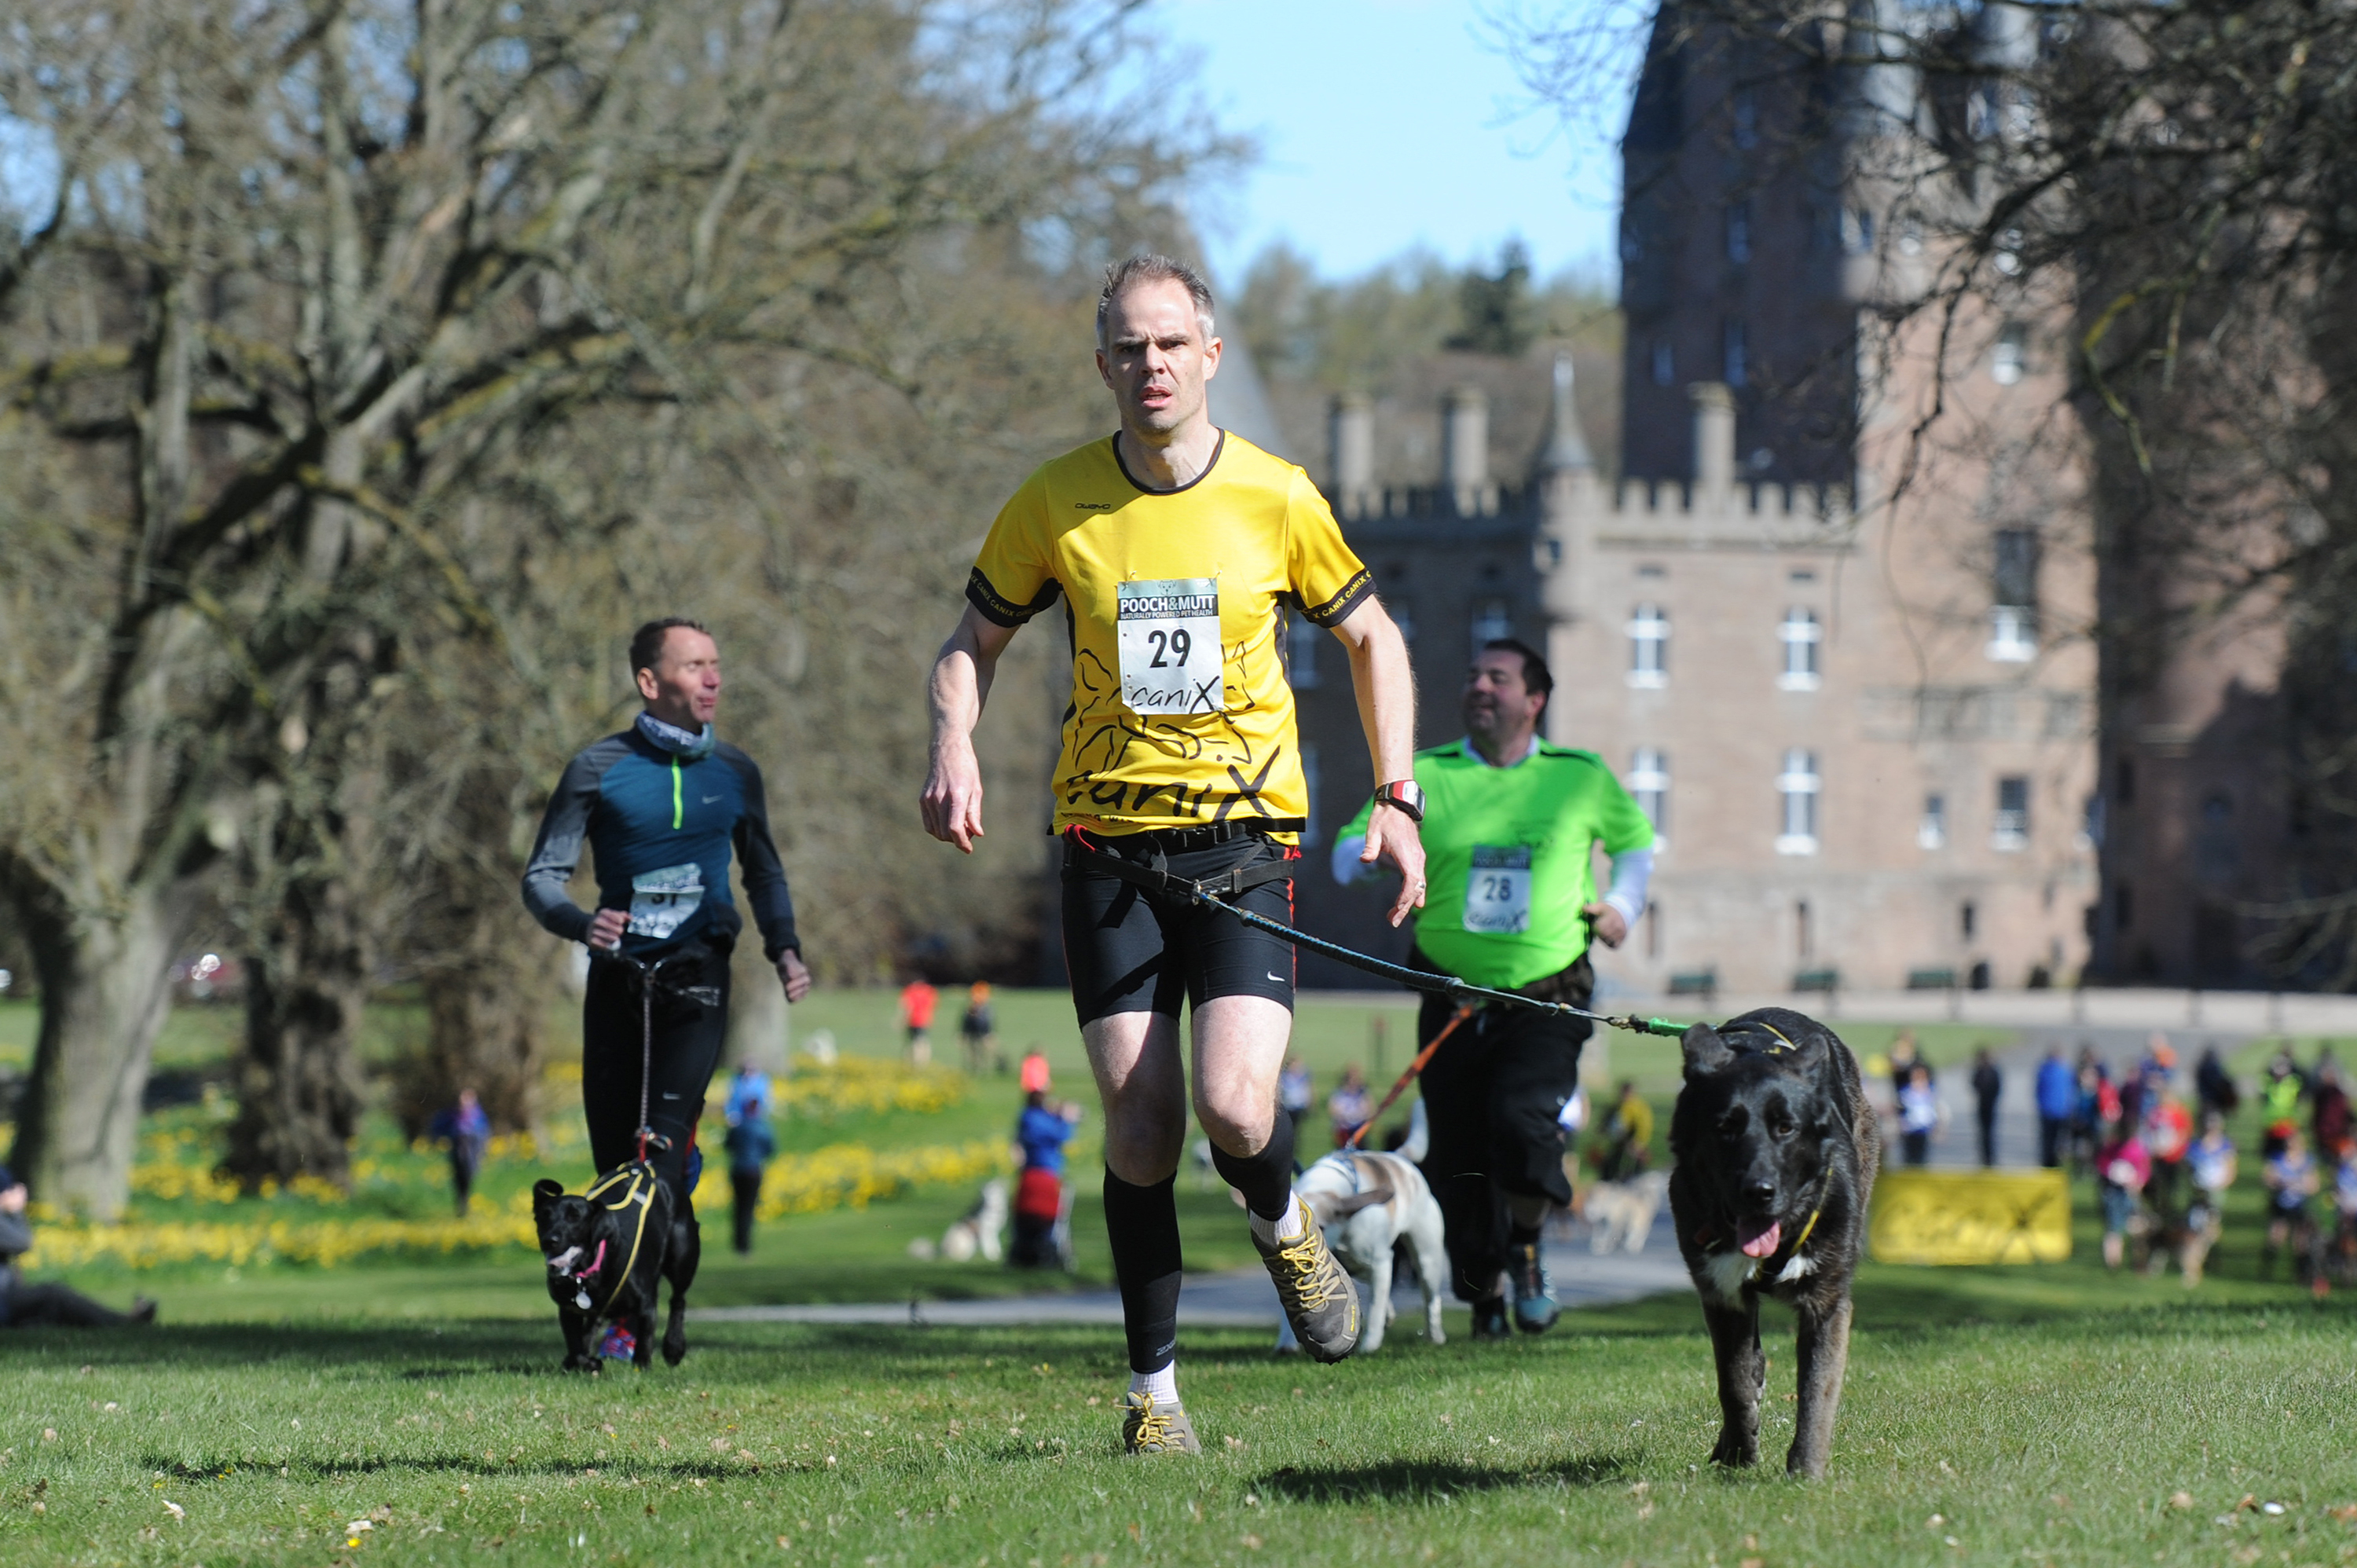 Competitors in last year's event at Glamis Castle